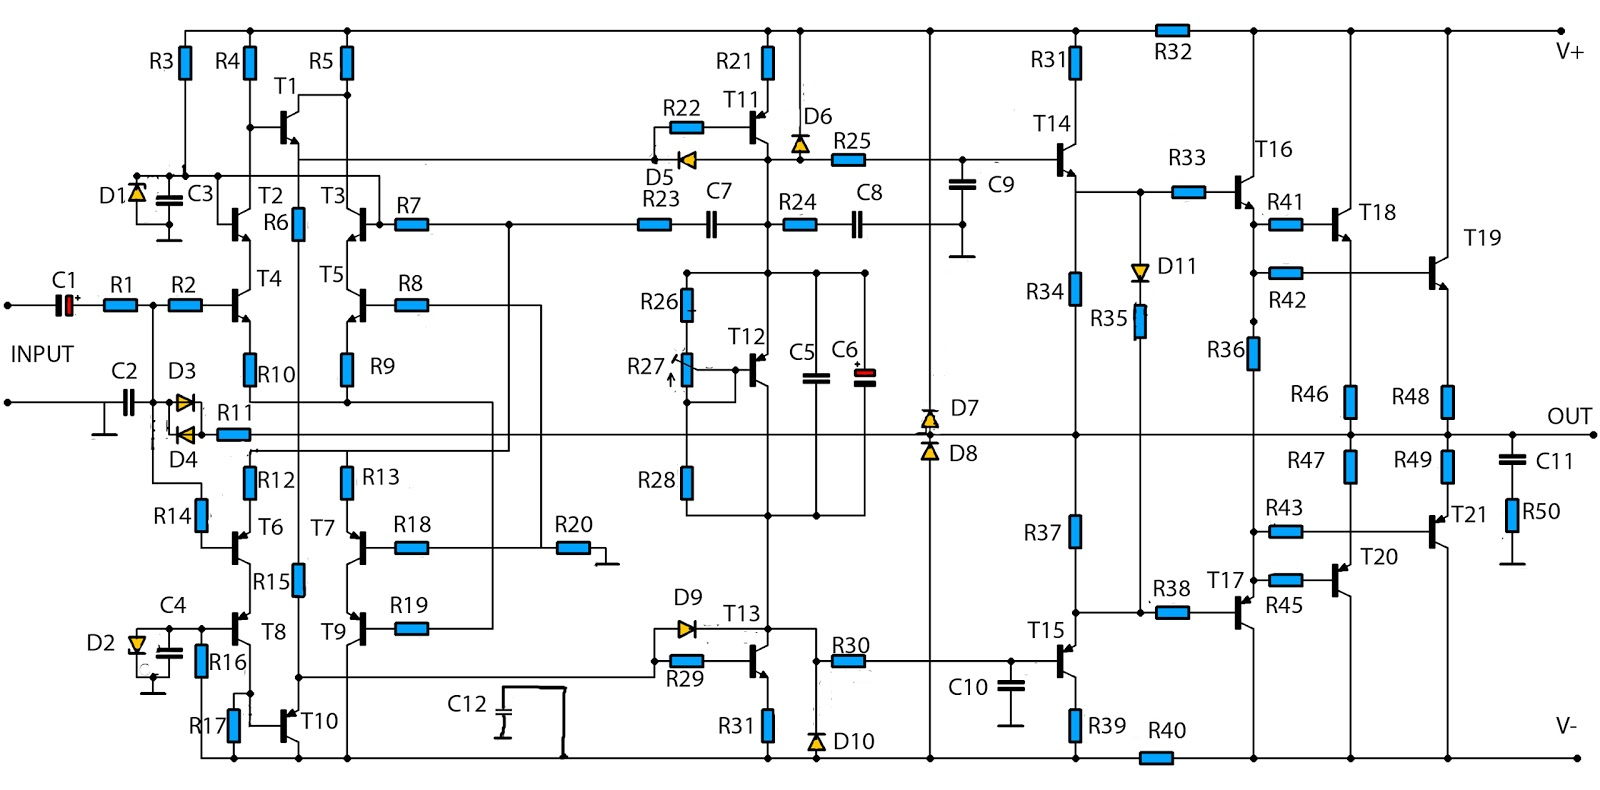 2000w Power Amplifier Circuit Diagram Car Trailer Wiring With Brakes Free Transistor Audio Diagrsms 2800w High